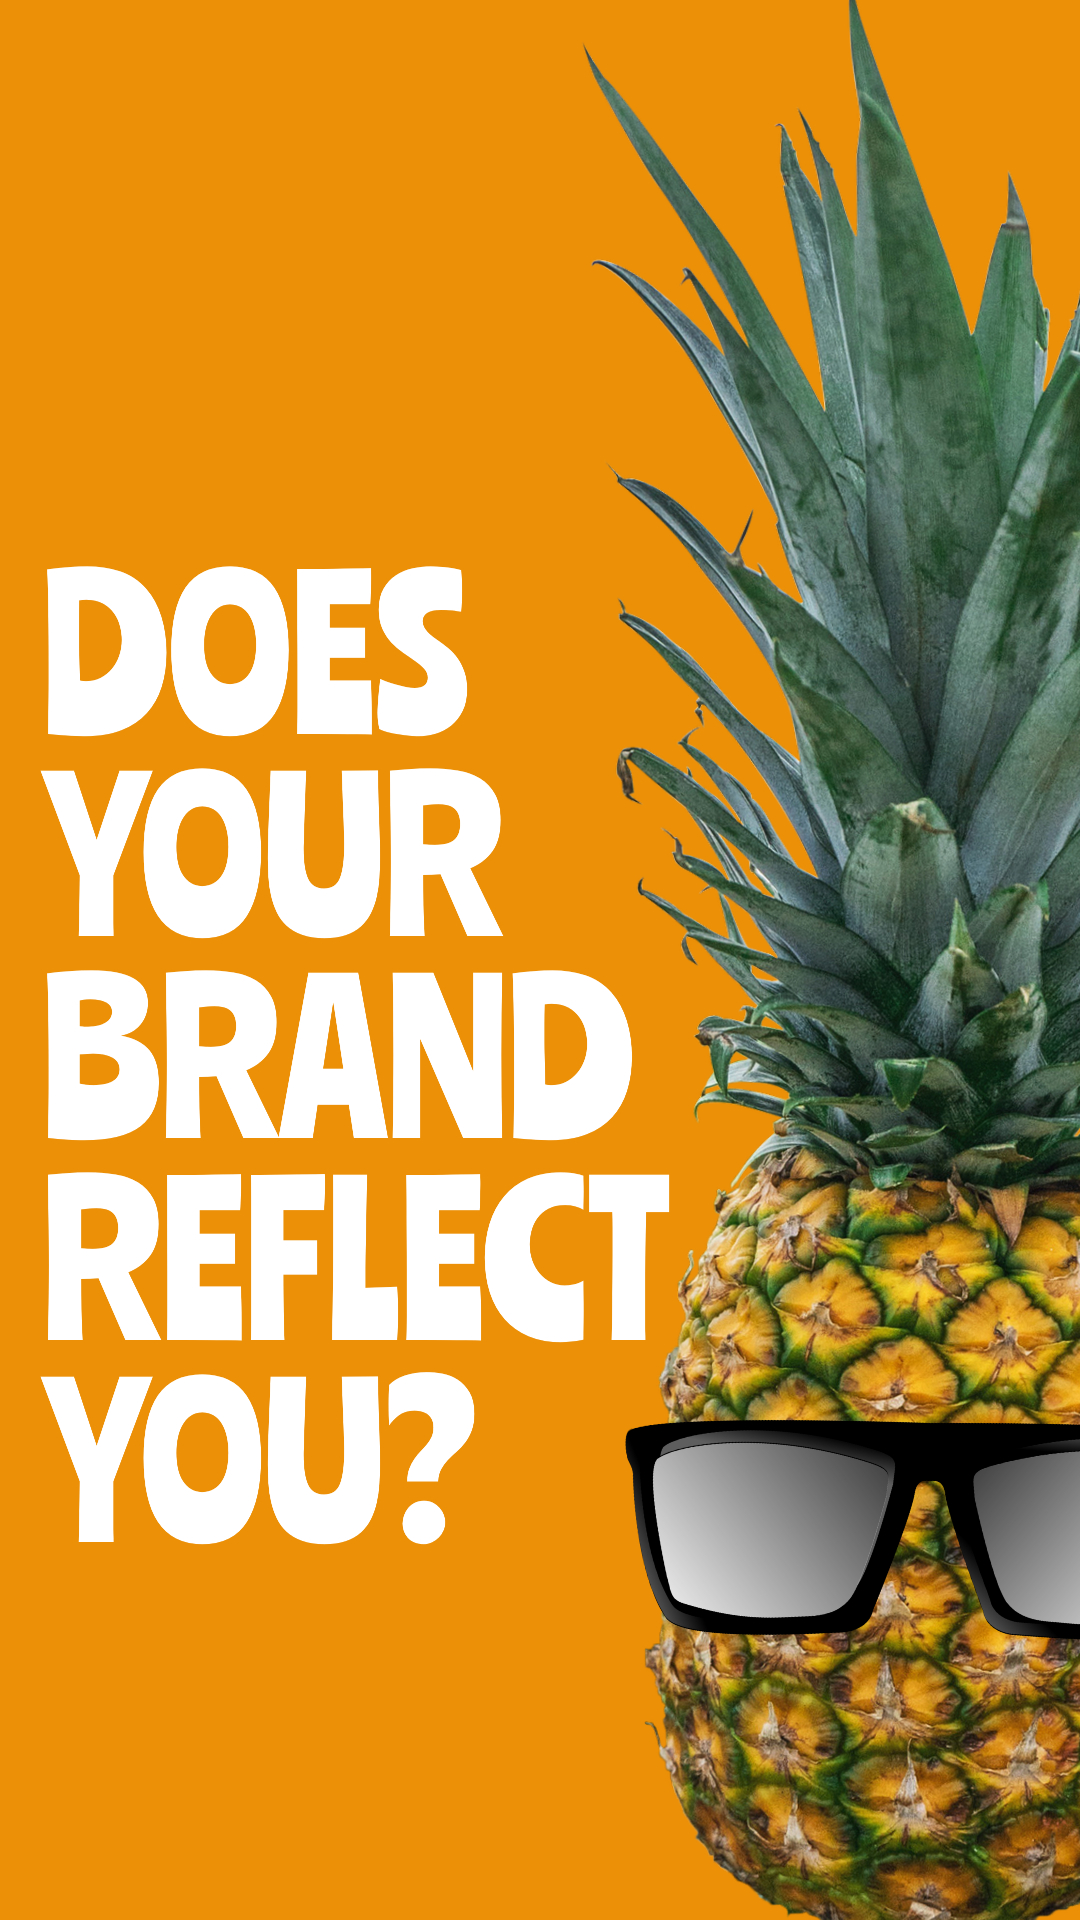 Does your brand reflect you?